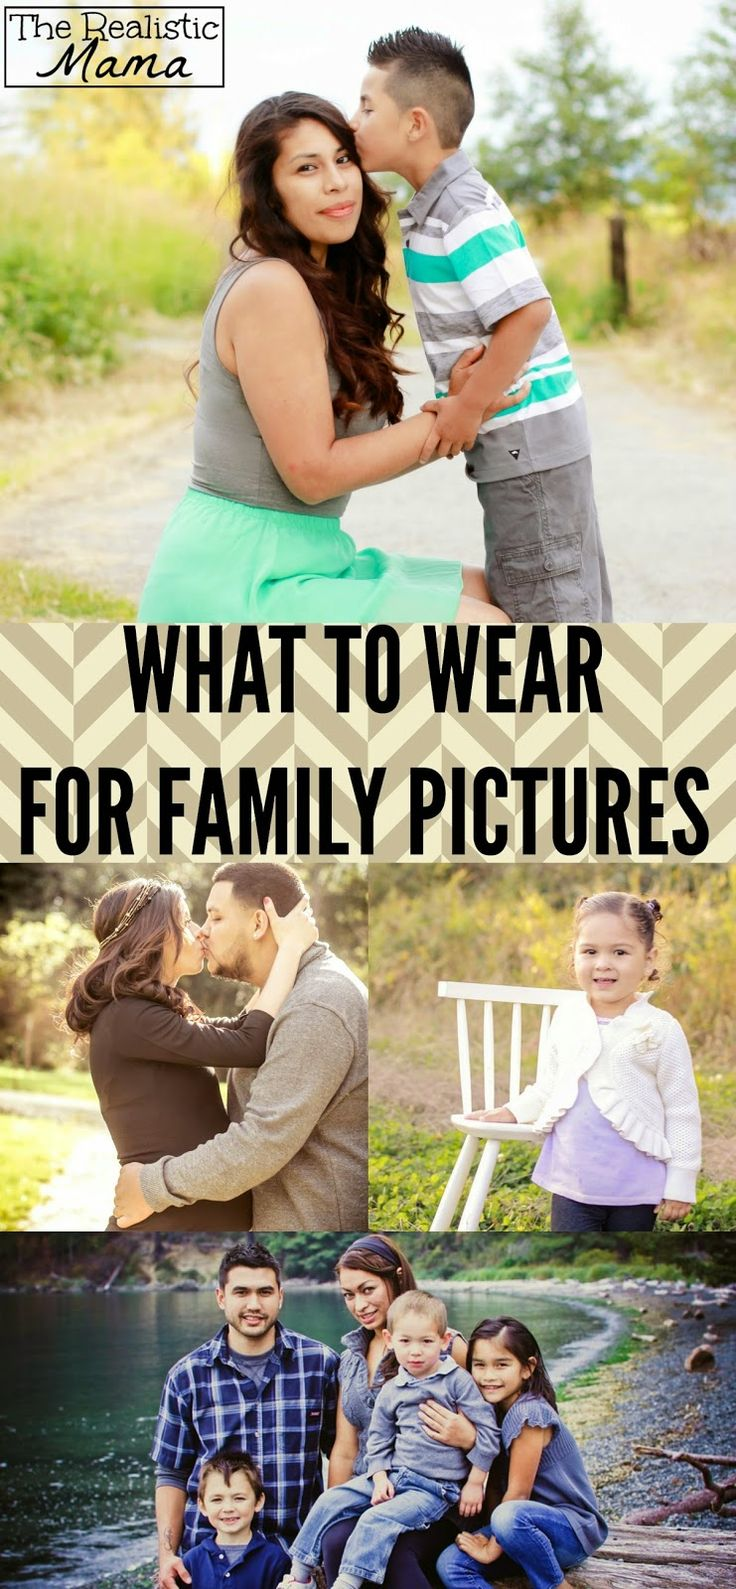 FAMILY PICTURES ... Tips and ideas on what to wear!